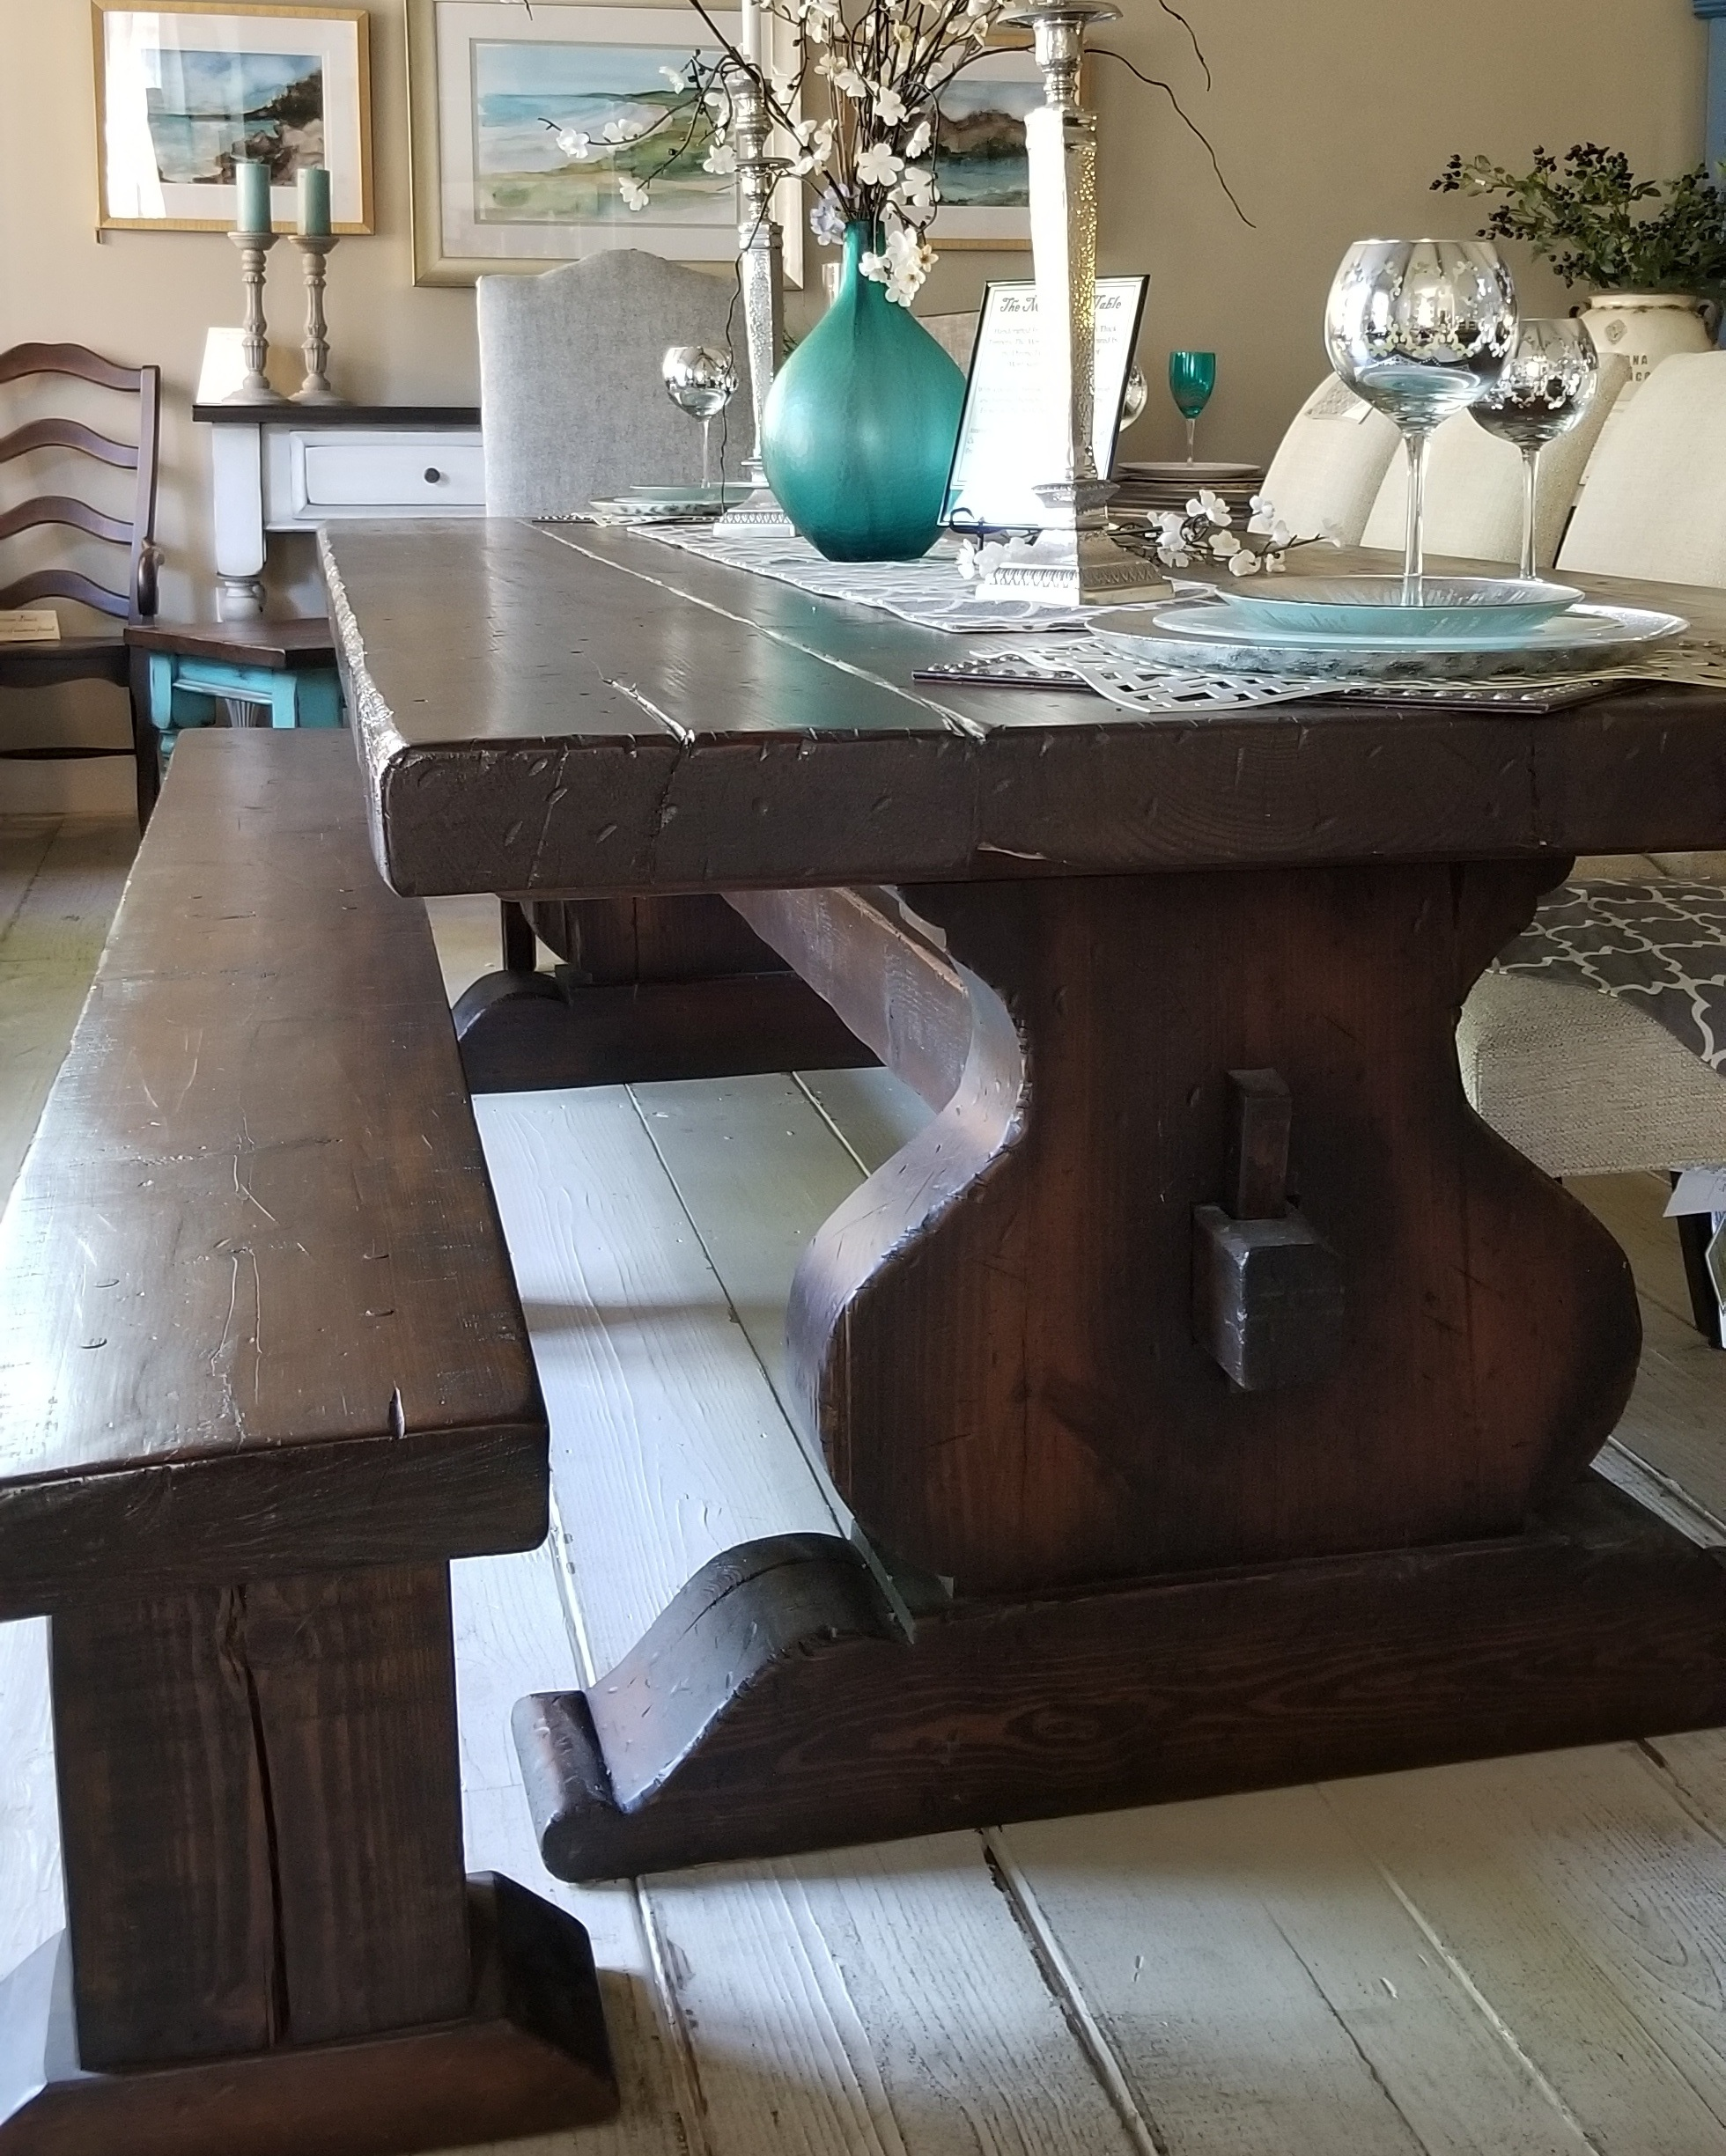 """Monastery Table-Our Monastery Table is a trestle table that is our signature design. This table is made of 2.5"""" - 3"""" thick old-growth Texas Loblolly Pine. The Monastery Table offers a variety of sizes and stain or paint options.Pricing Starts at $2,595 for 7'. -"""